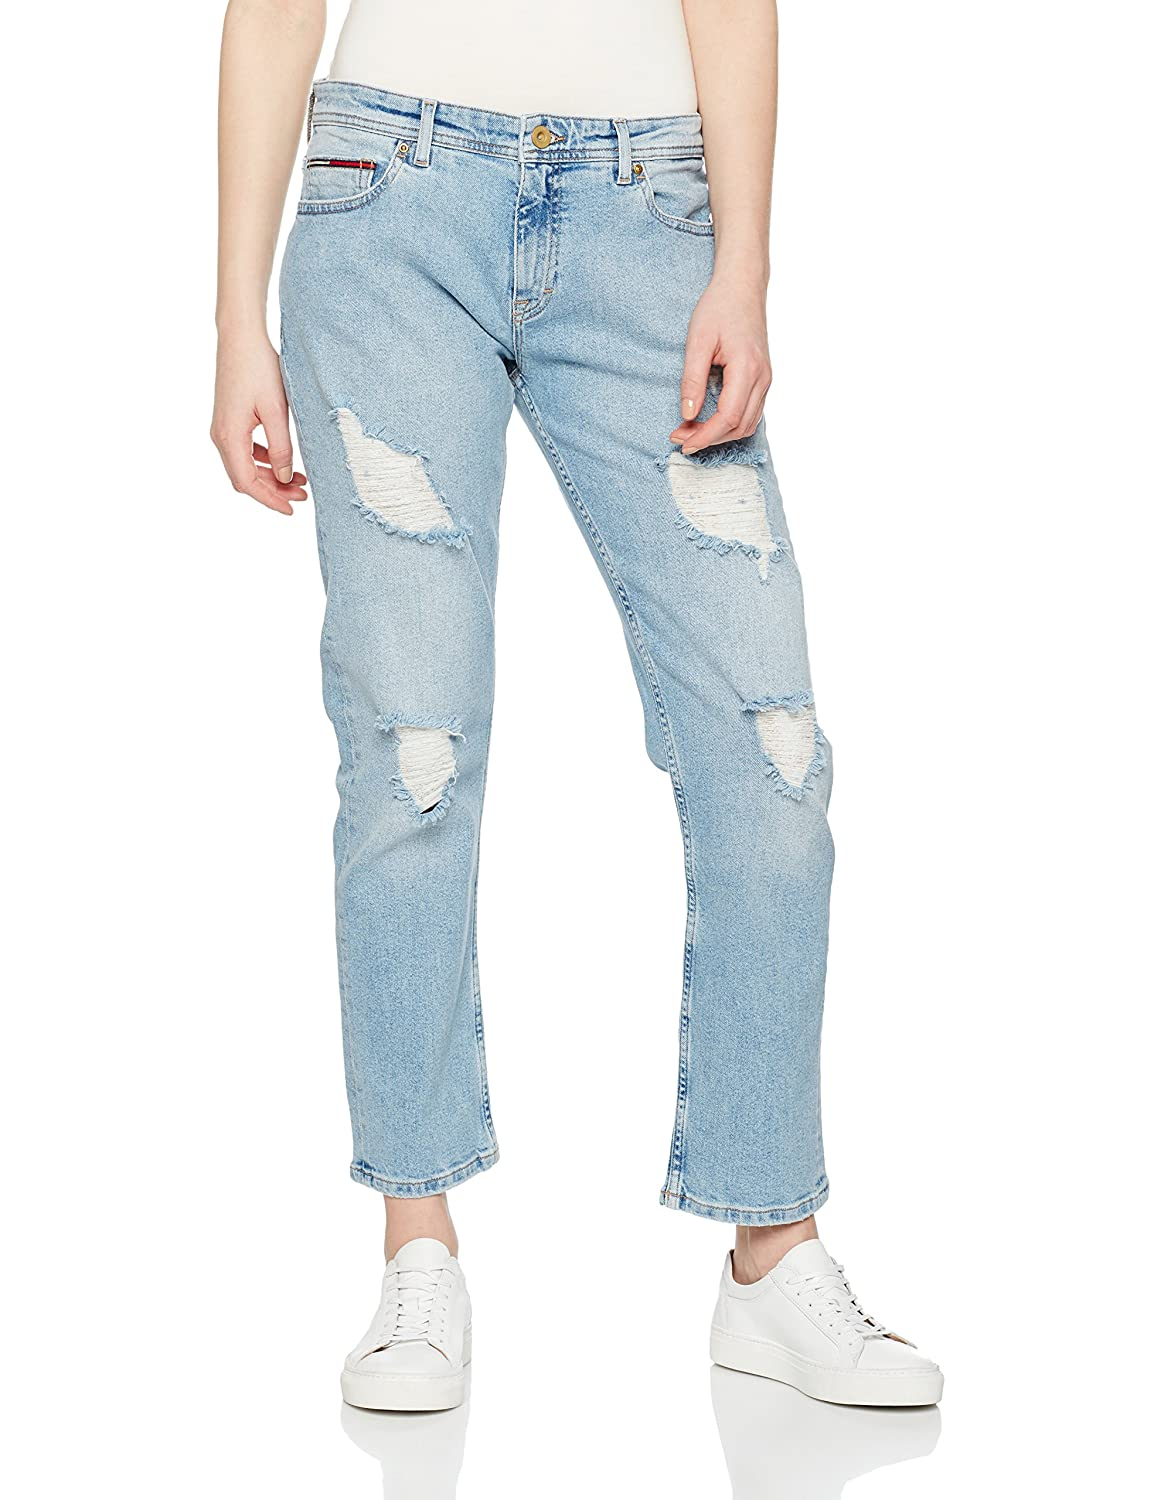 Tommy Jeans Mujer STRAIGHT CROPPED LANA FRLBL Vaqueros  7/8